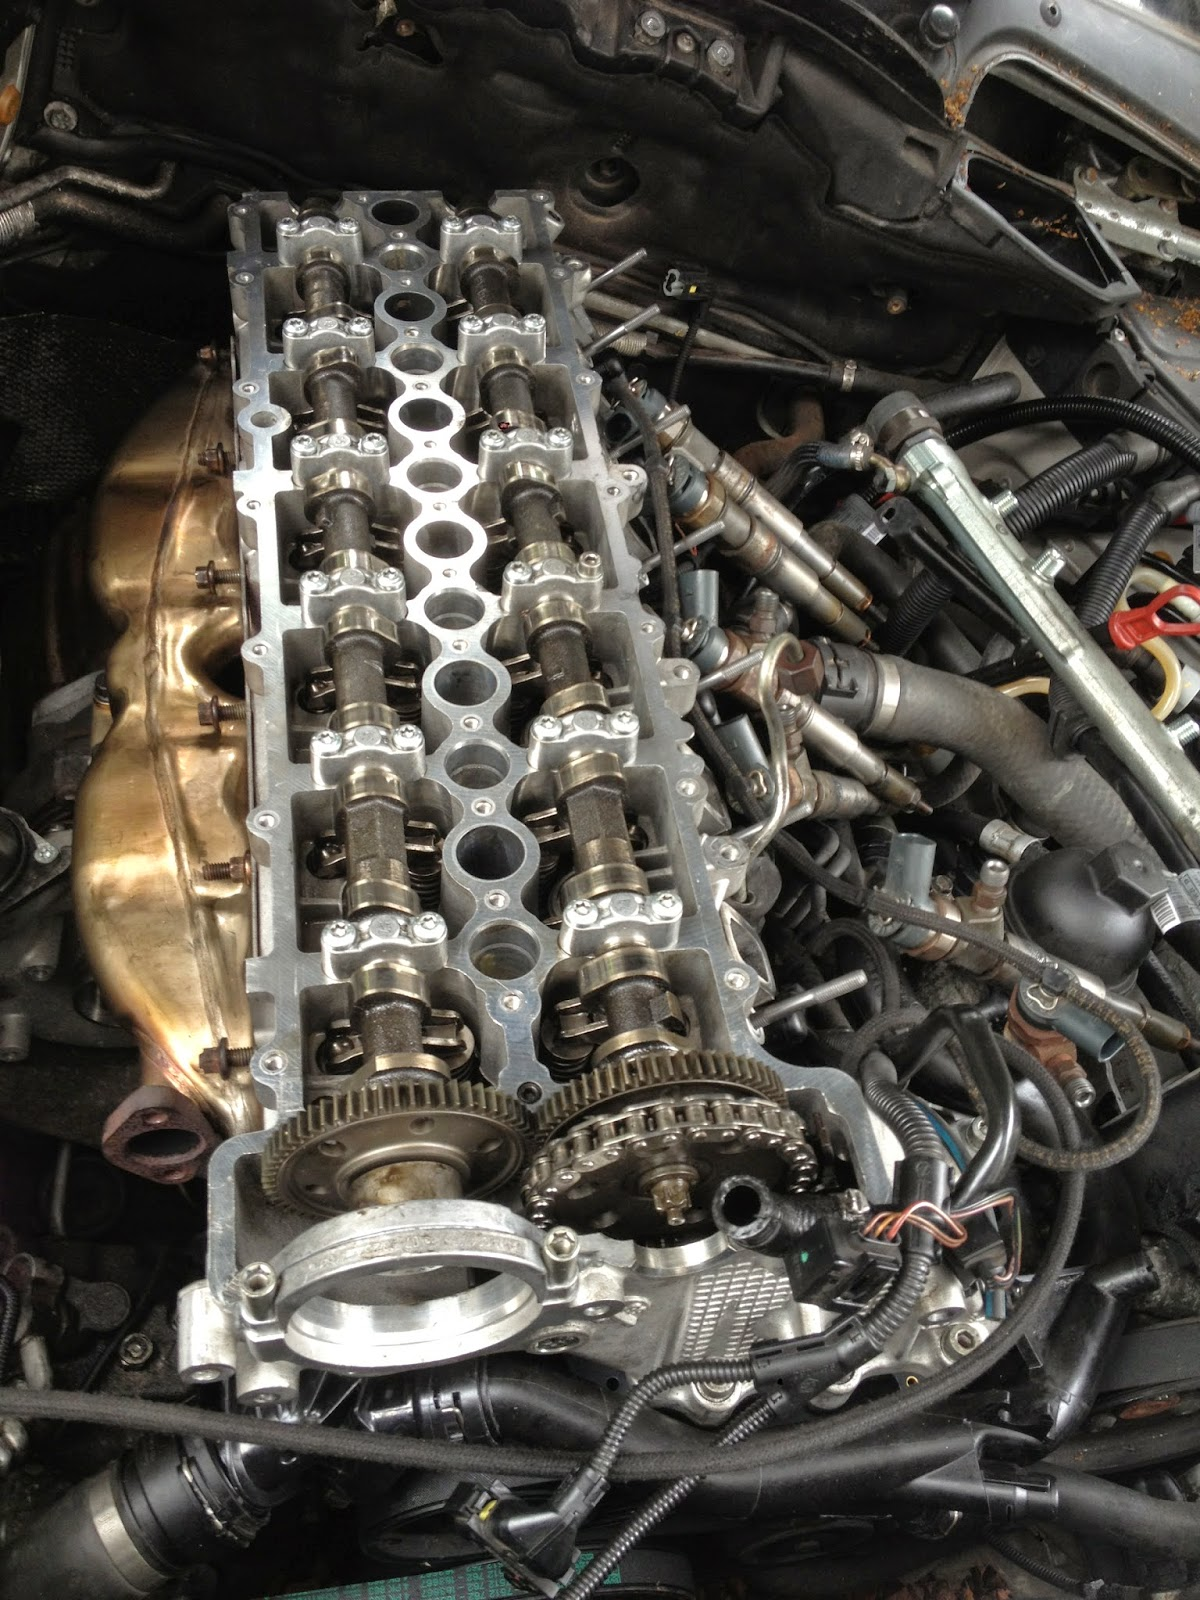 Beemer Lab Formerly Planet 5 E60 Engine Rebuild 1